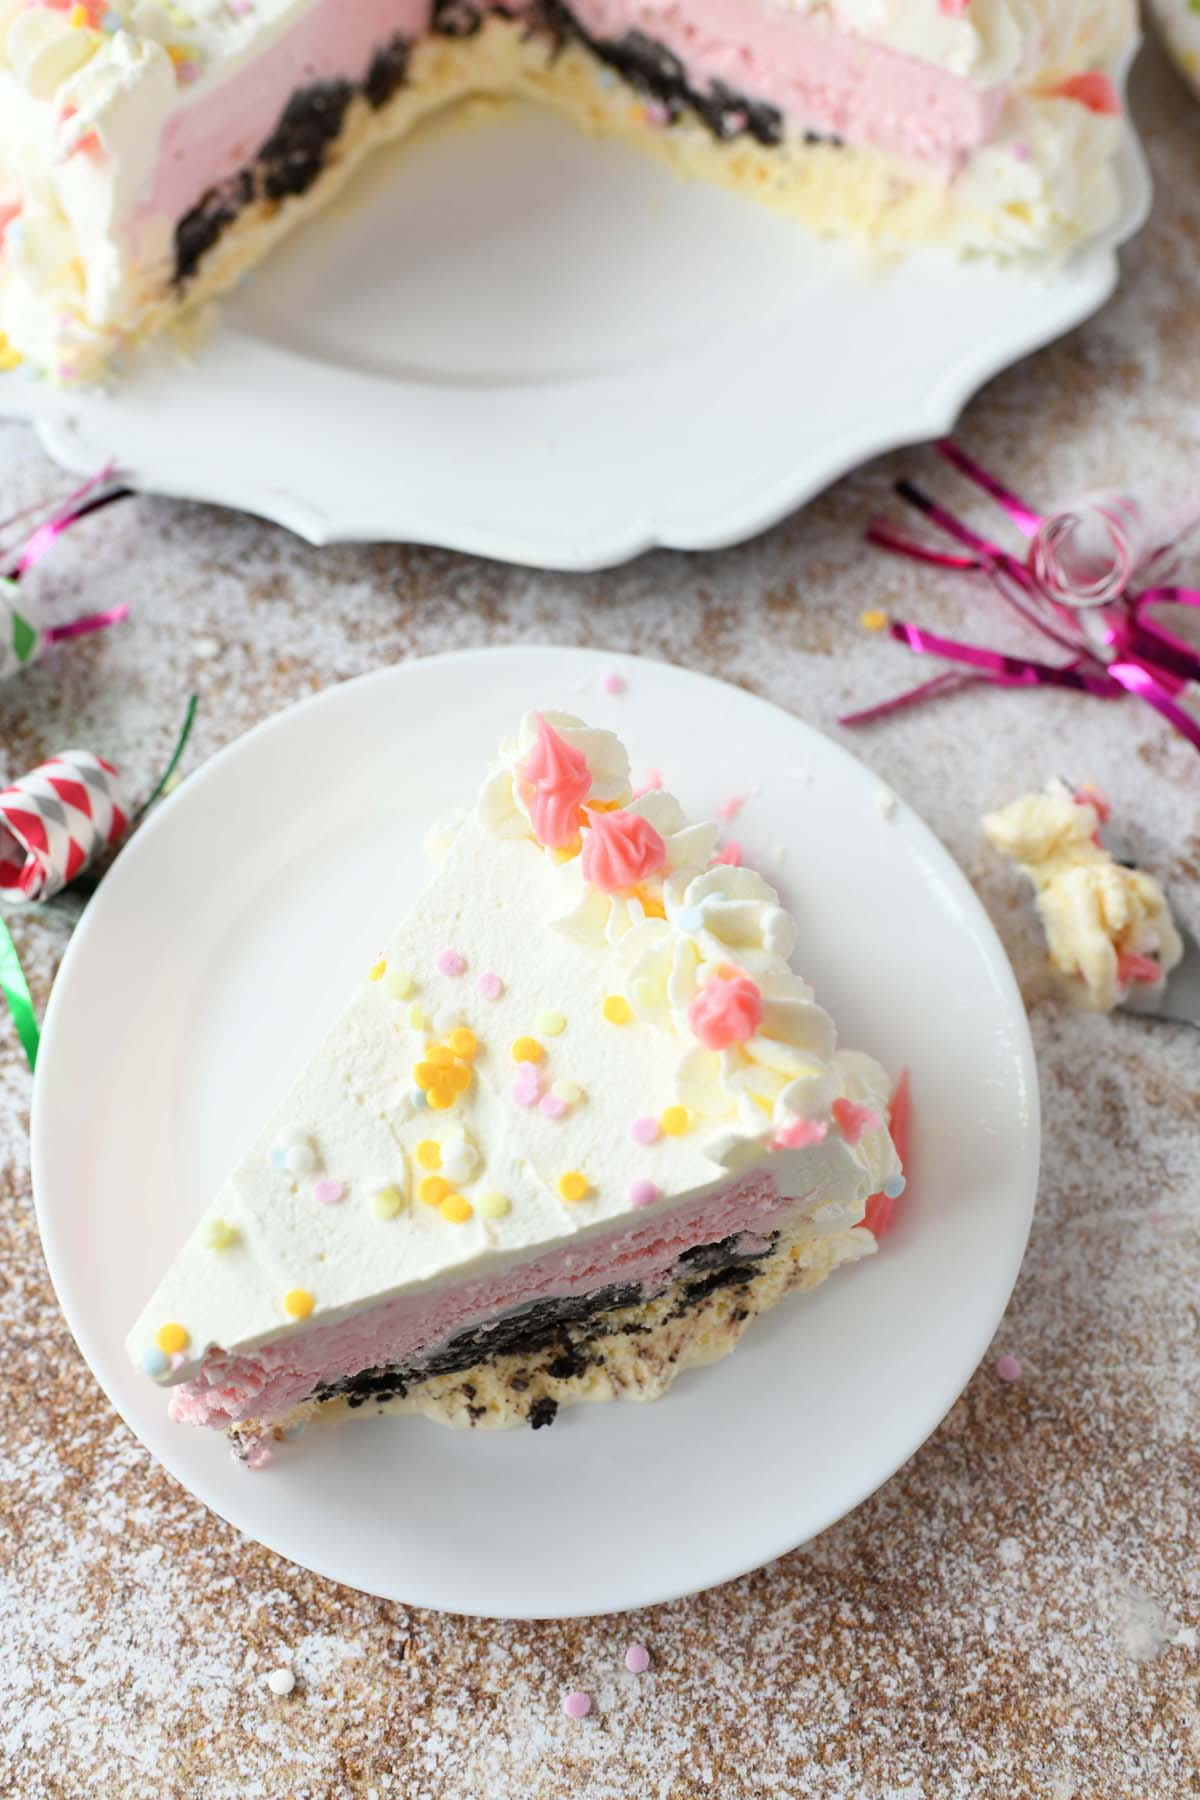 Slice of Homemade Ice Cream Cake on a wooden speckled table with a party streamer.